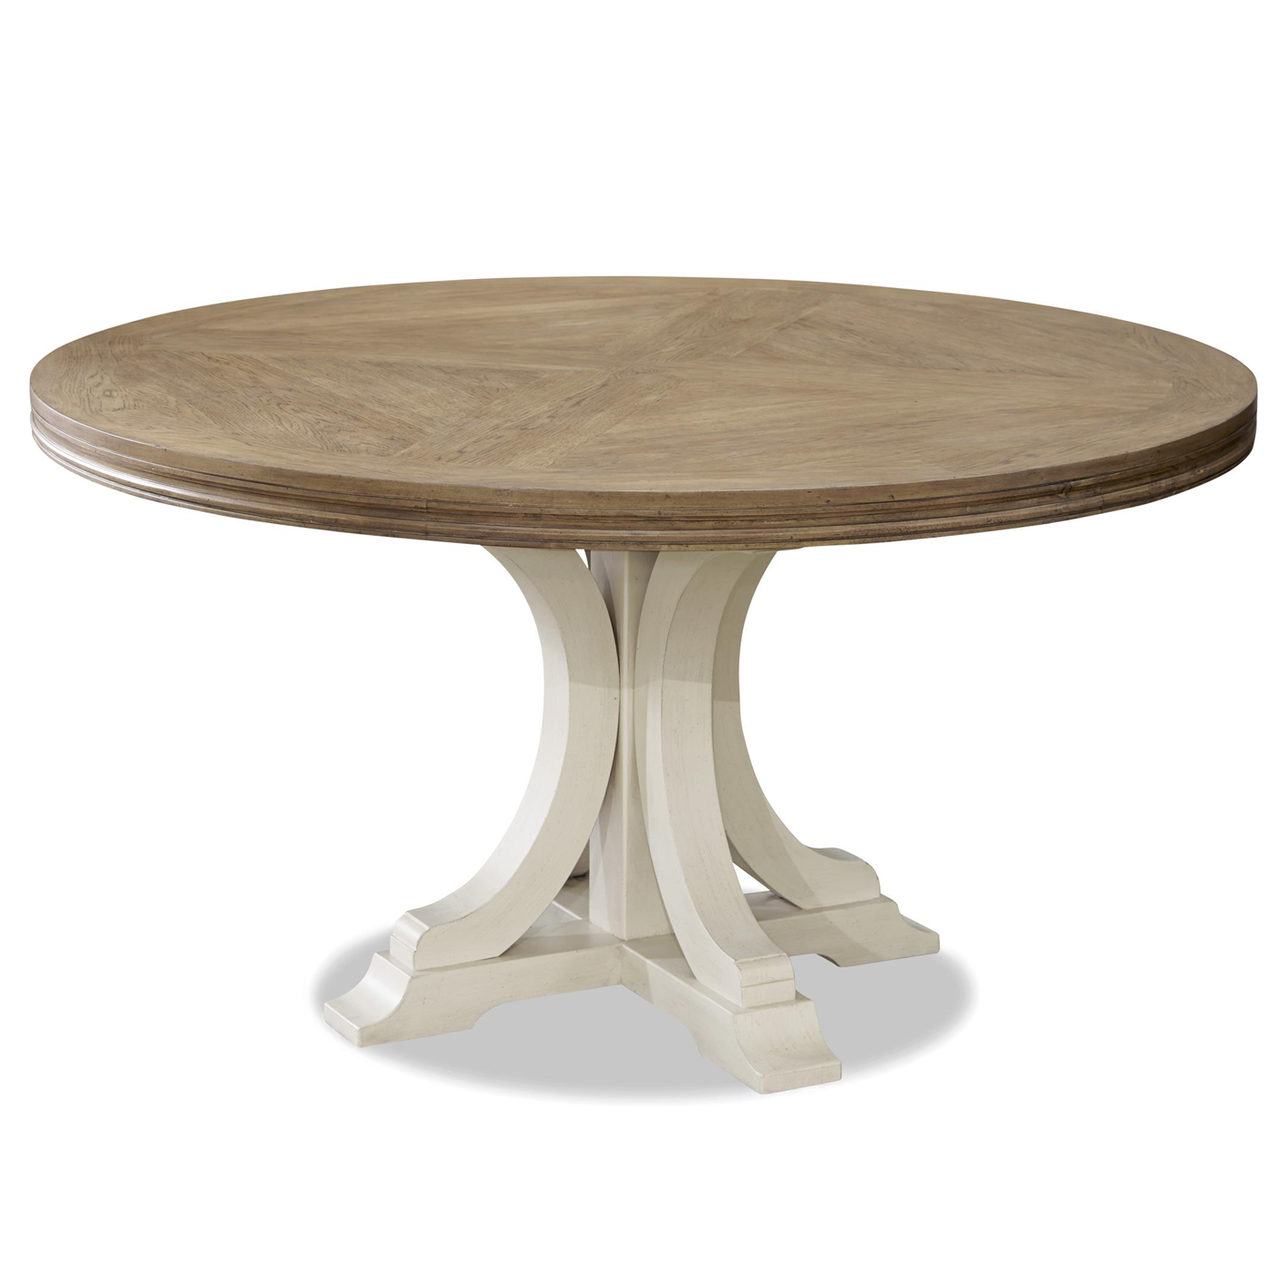 French modern white wood pedestal round dining table 58 for Modern round dining table